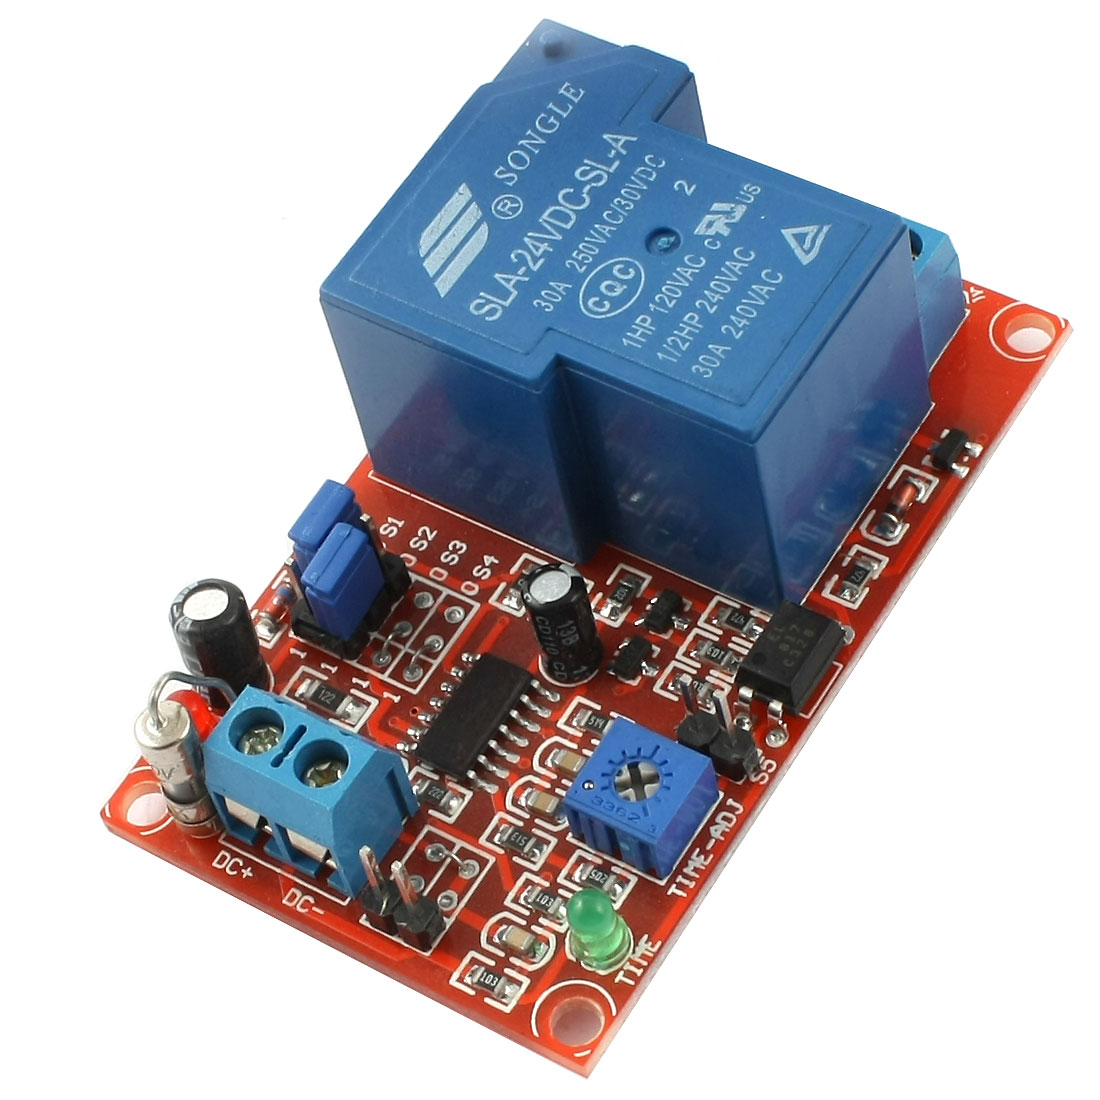 DC 24V 1 Channel High Current Normally Open Activating Relay Module for ARM PIC AVR RSUS